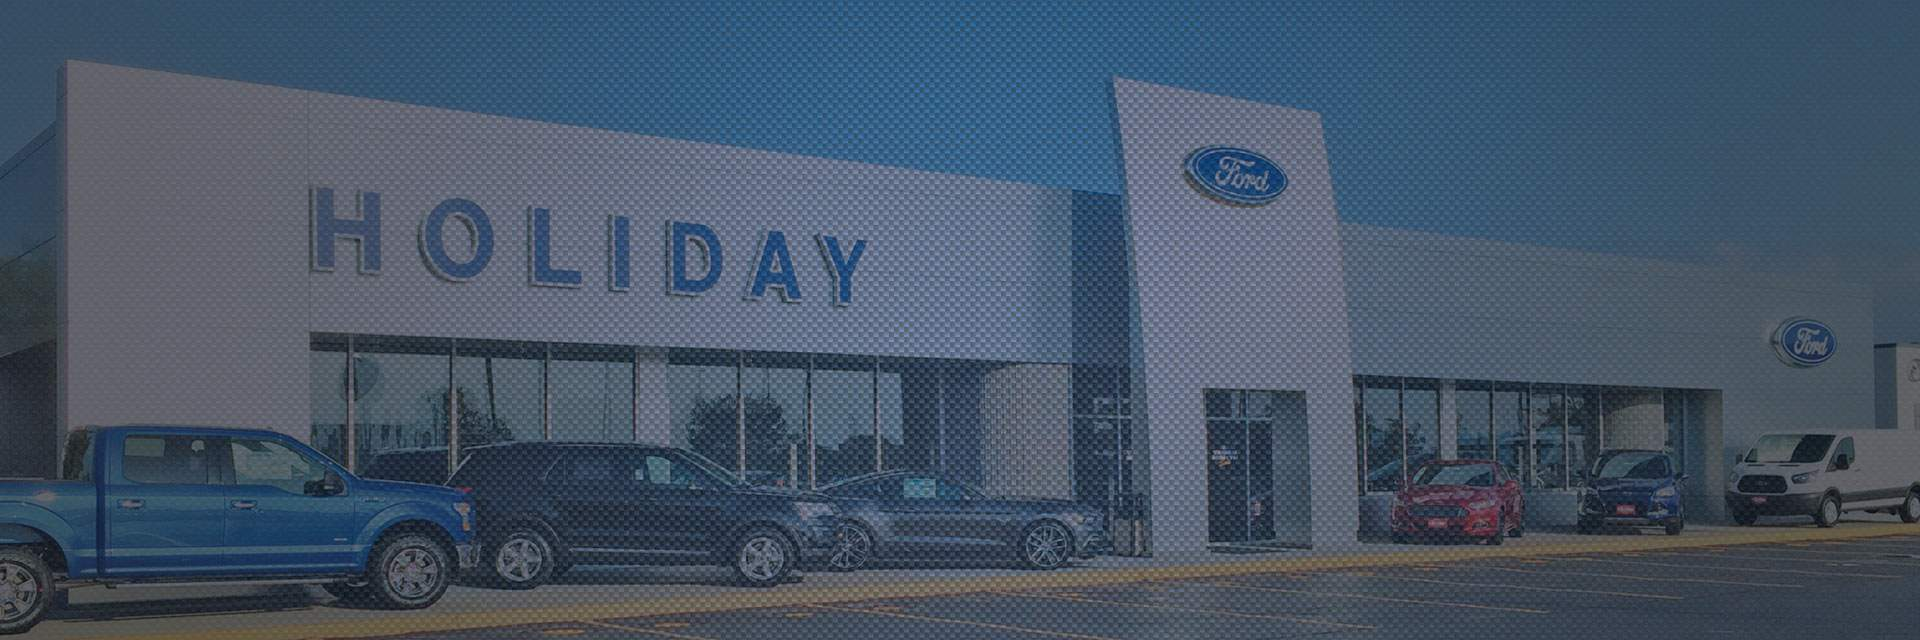 Holiday Ford Fond du Lac